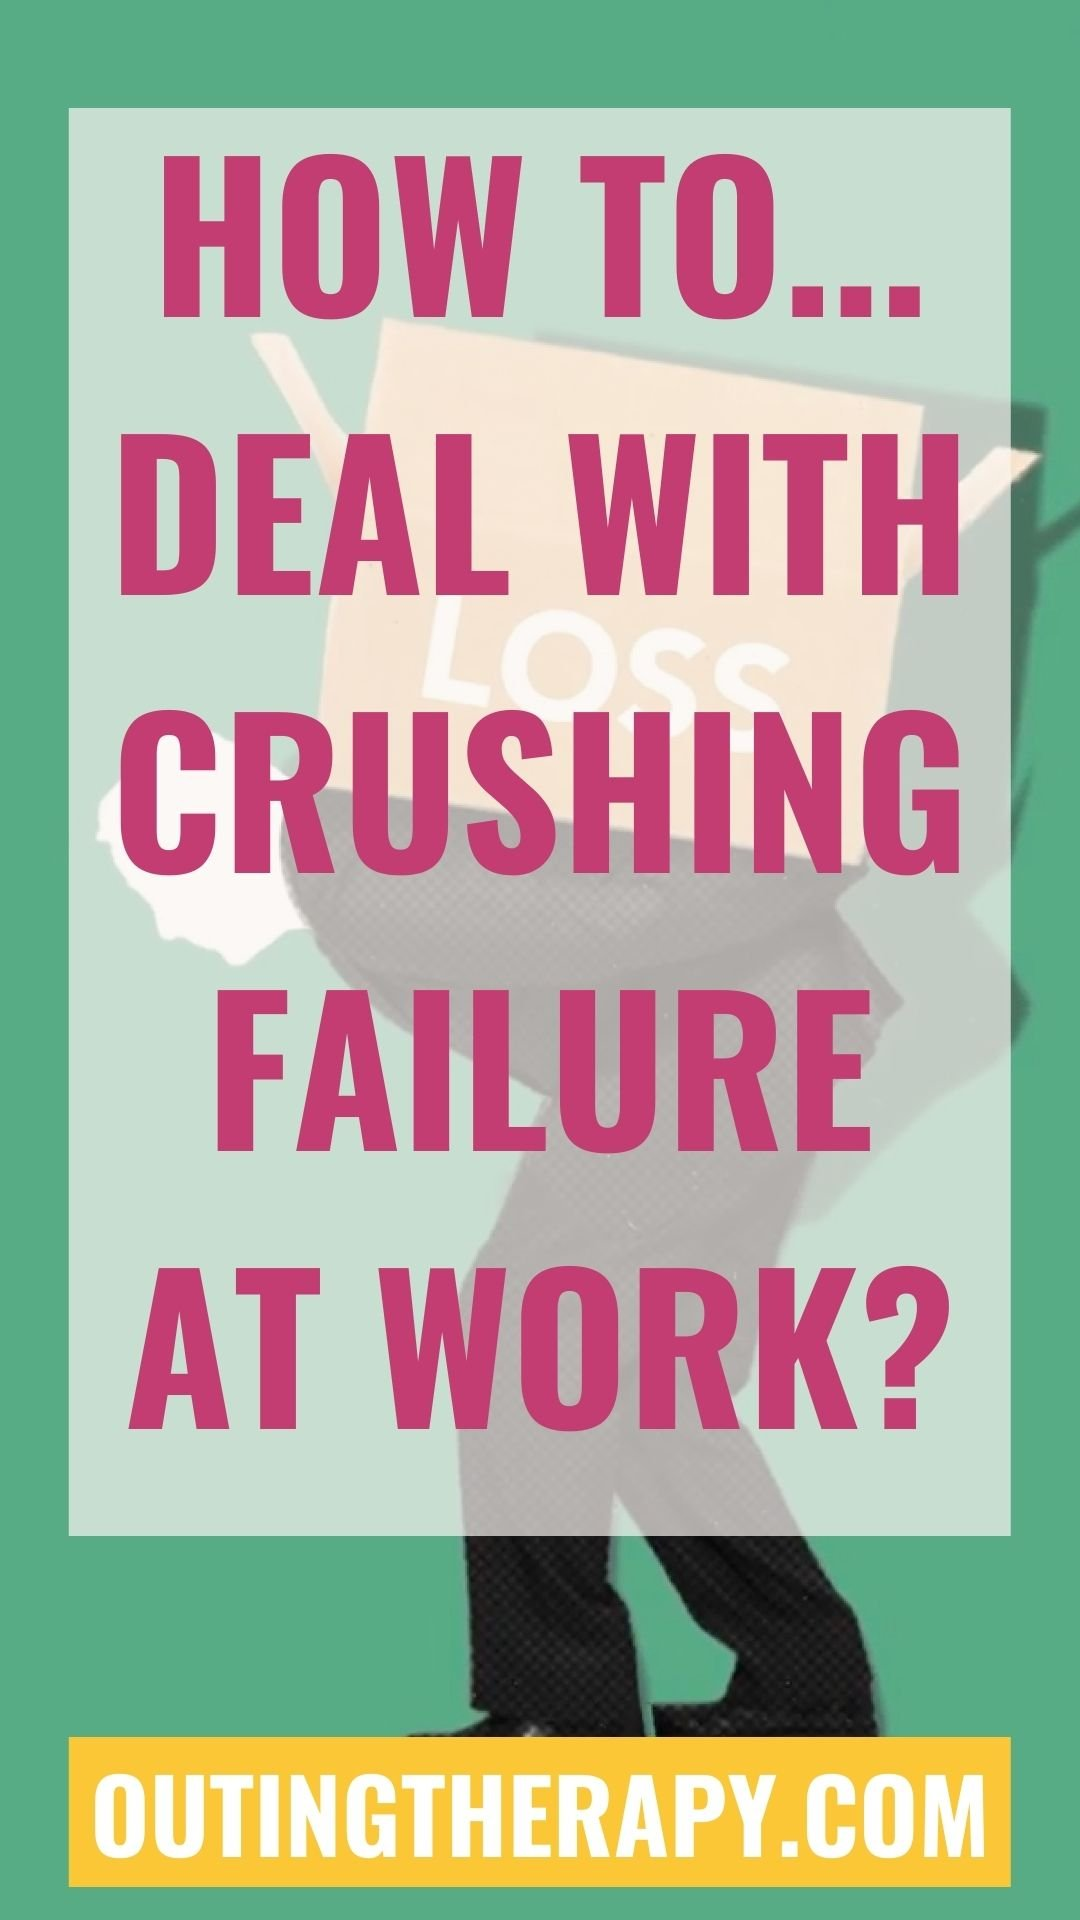 HOW TO DEAL WITH CRUSHING FAILURE AT WORK TO GET BACK UP STRONGER AND BETTER THAN EVER BEFORE?